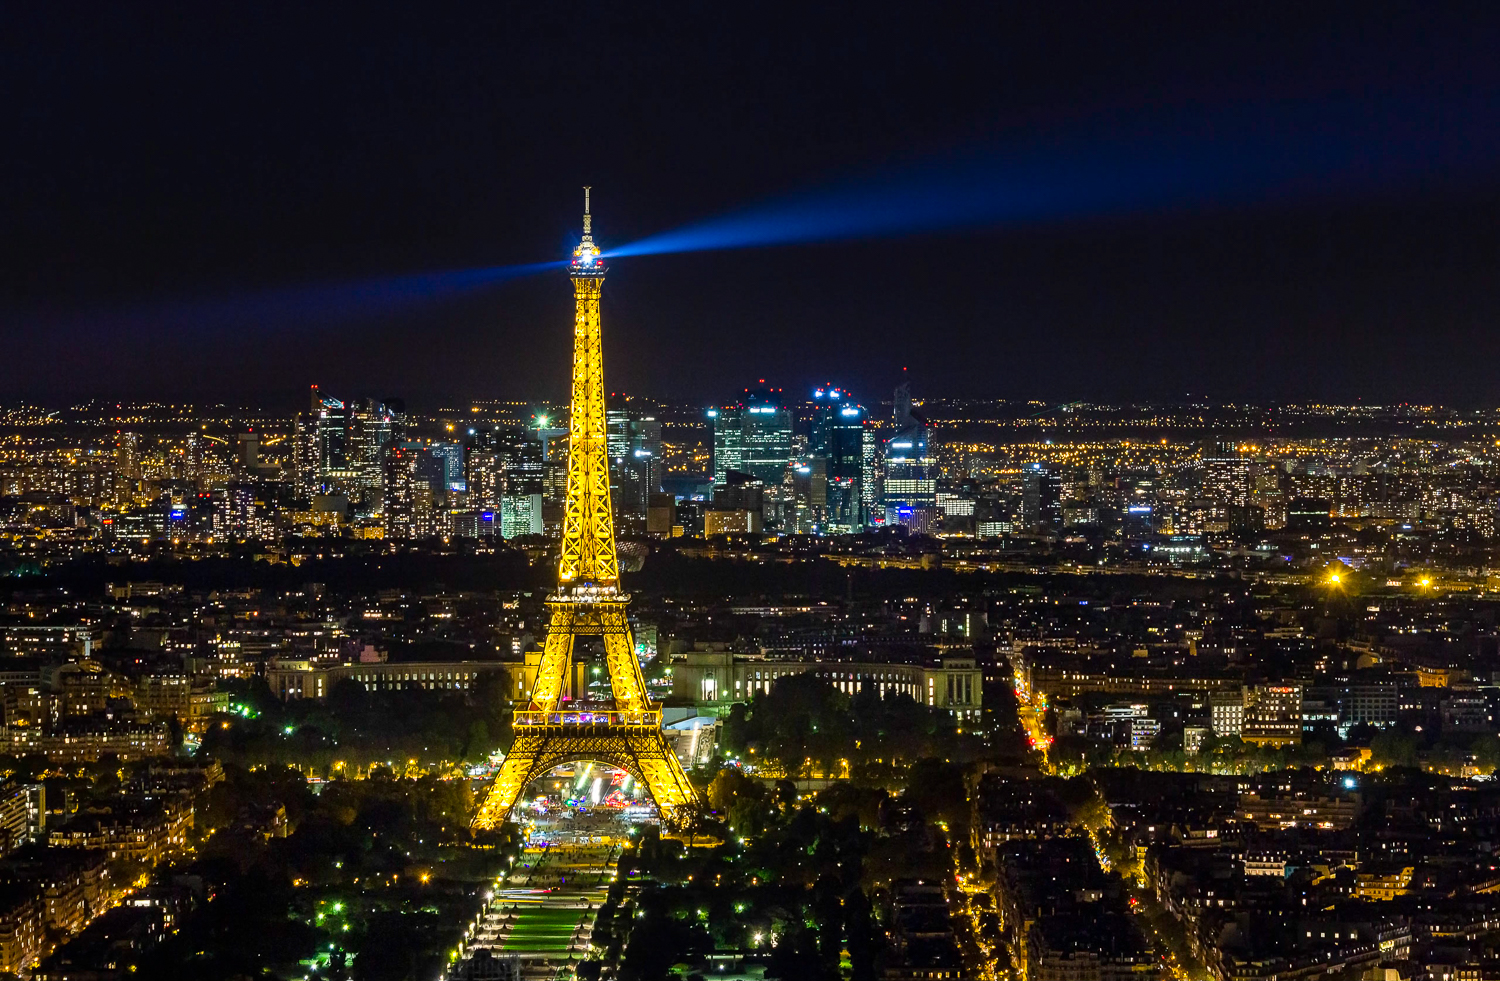 Eiffel Tower in Paris at night in city lights